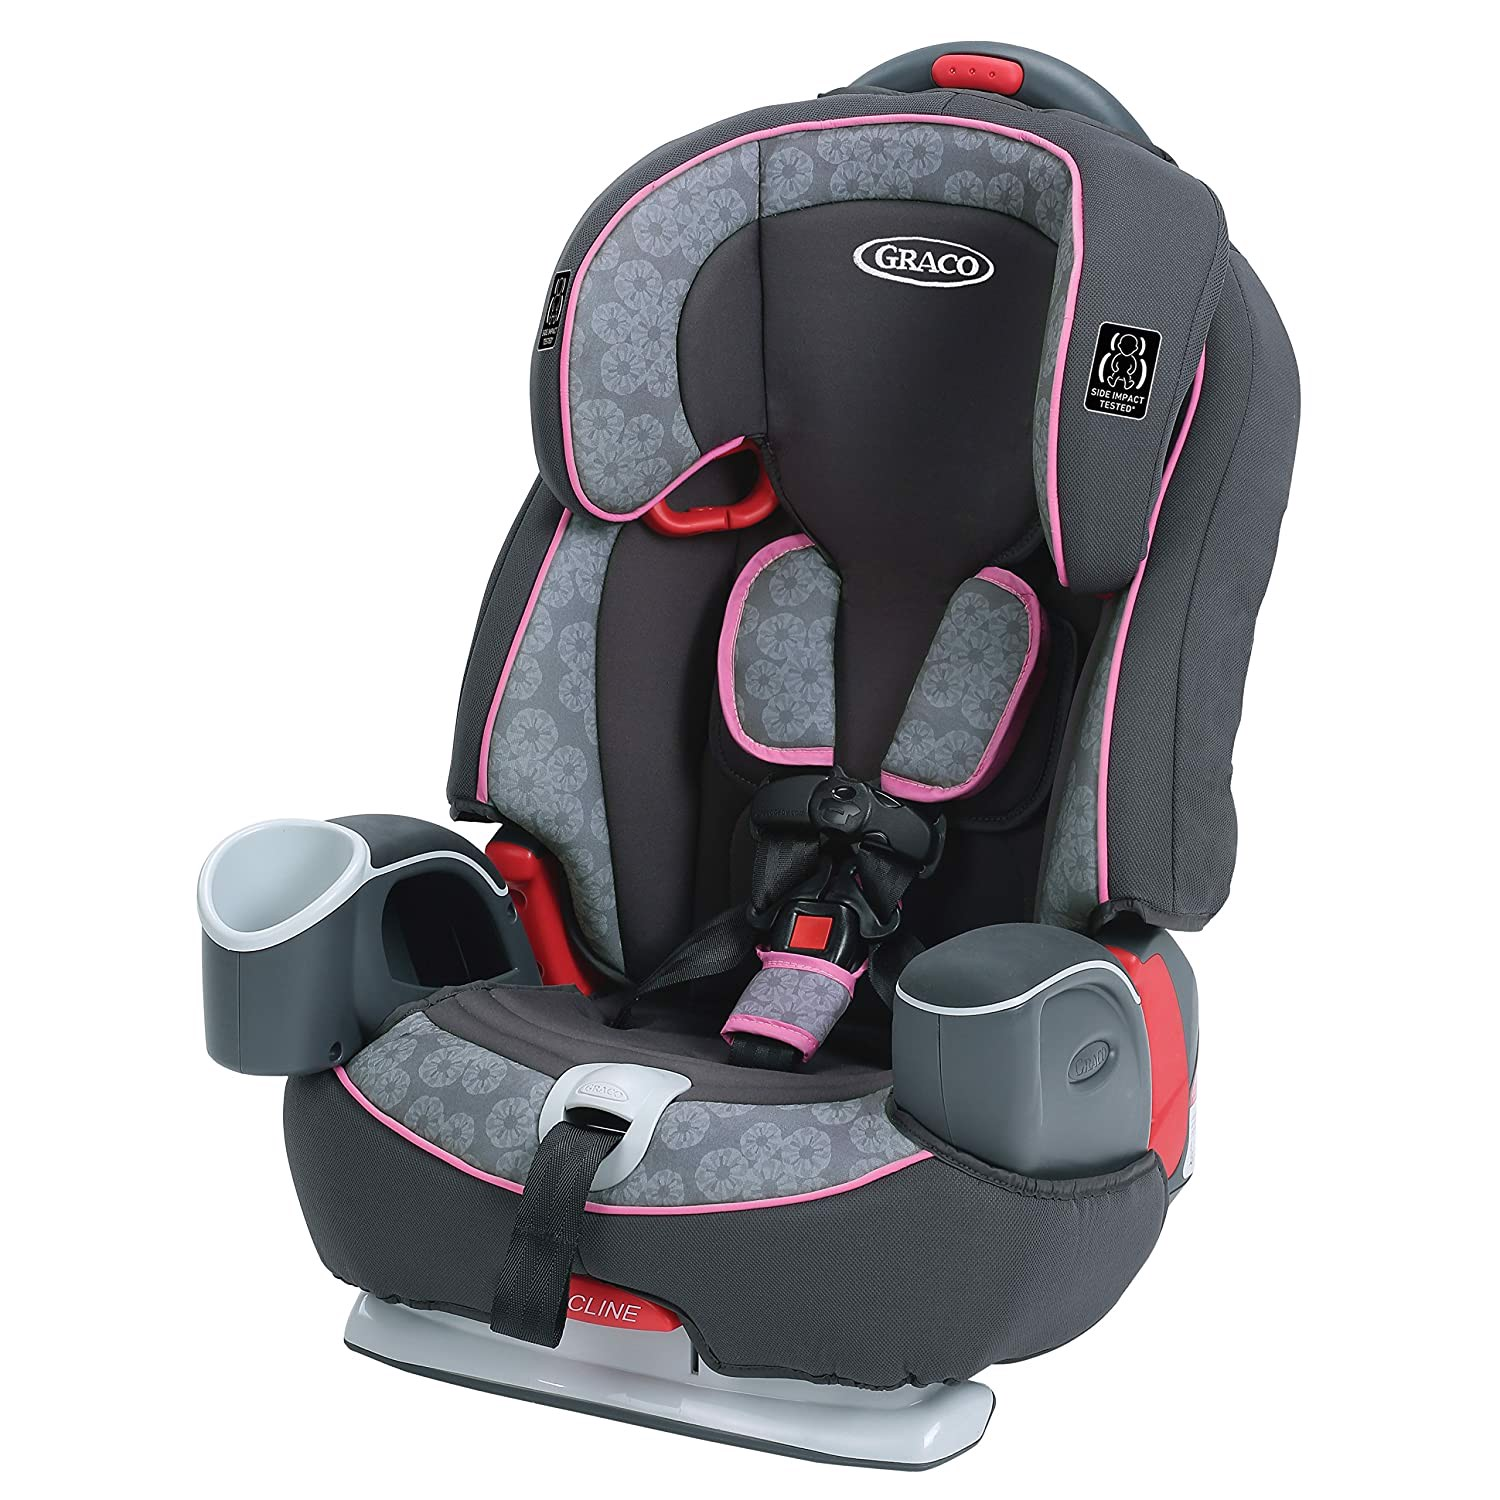 Ghế an toàn Graco Nautilus 65 3-in-1 Harness Booster Car Seat